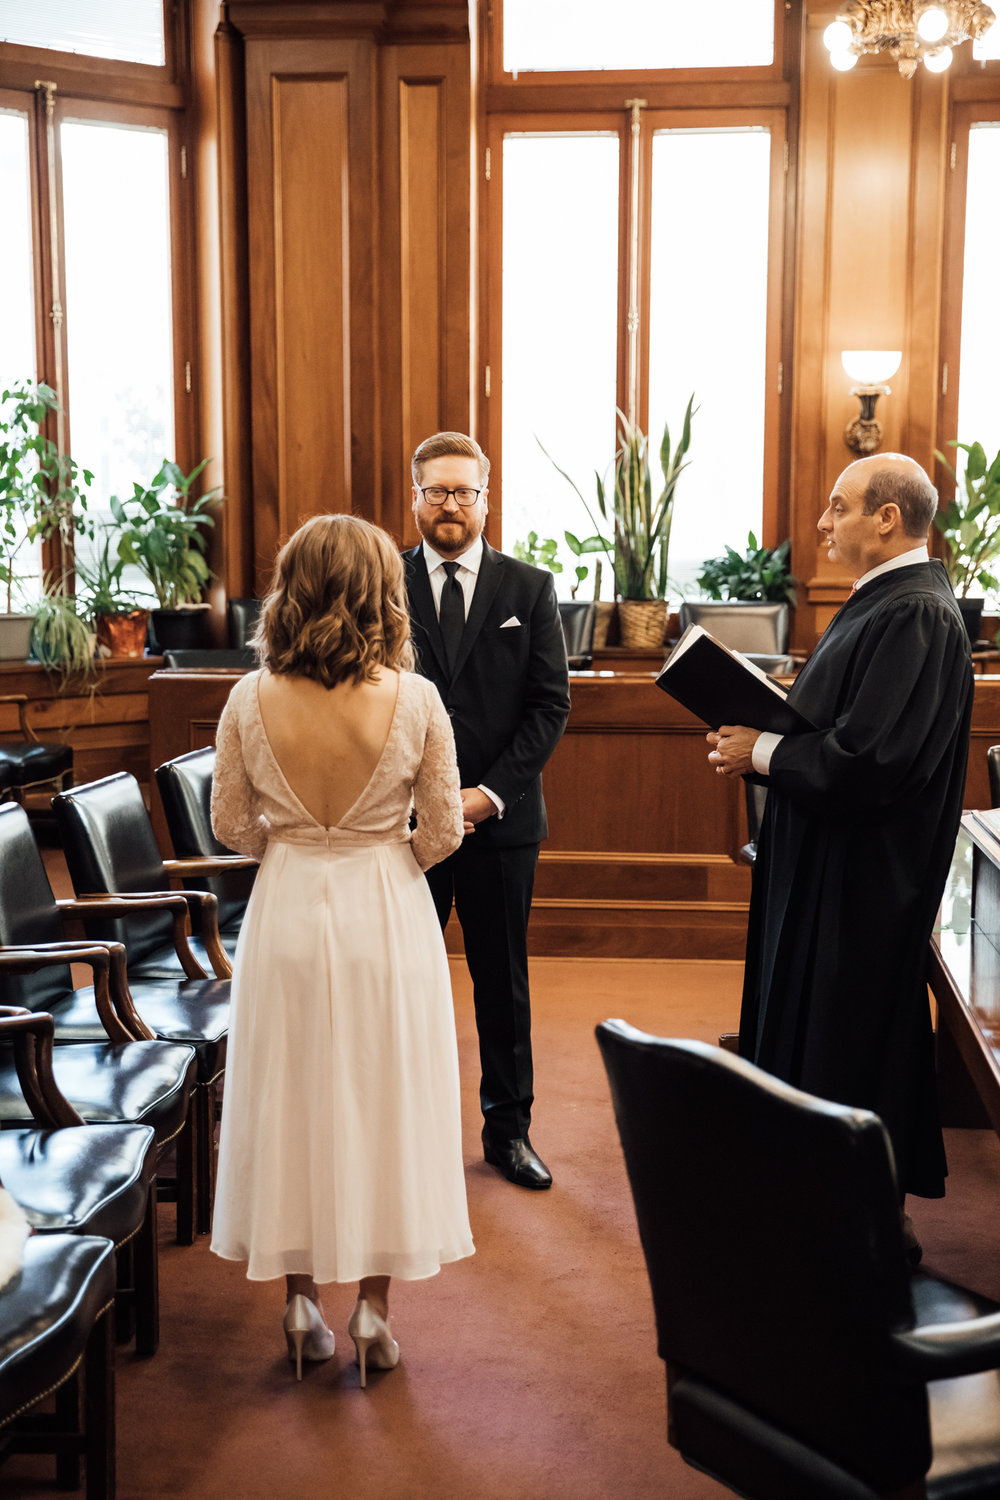 memphis-courthouse-elopement-thewarmtharoundyou-amanda-michael (6 of 143).jpg